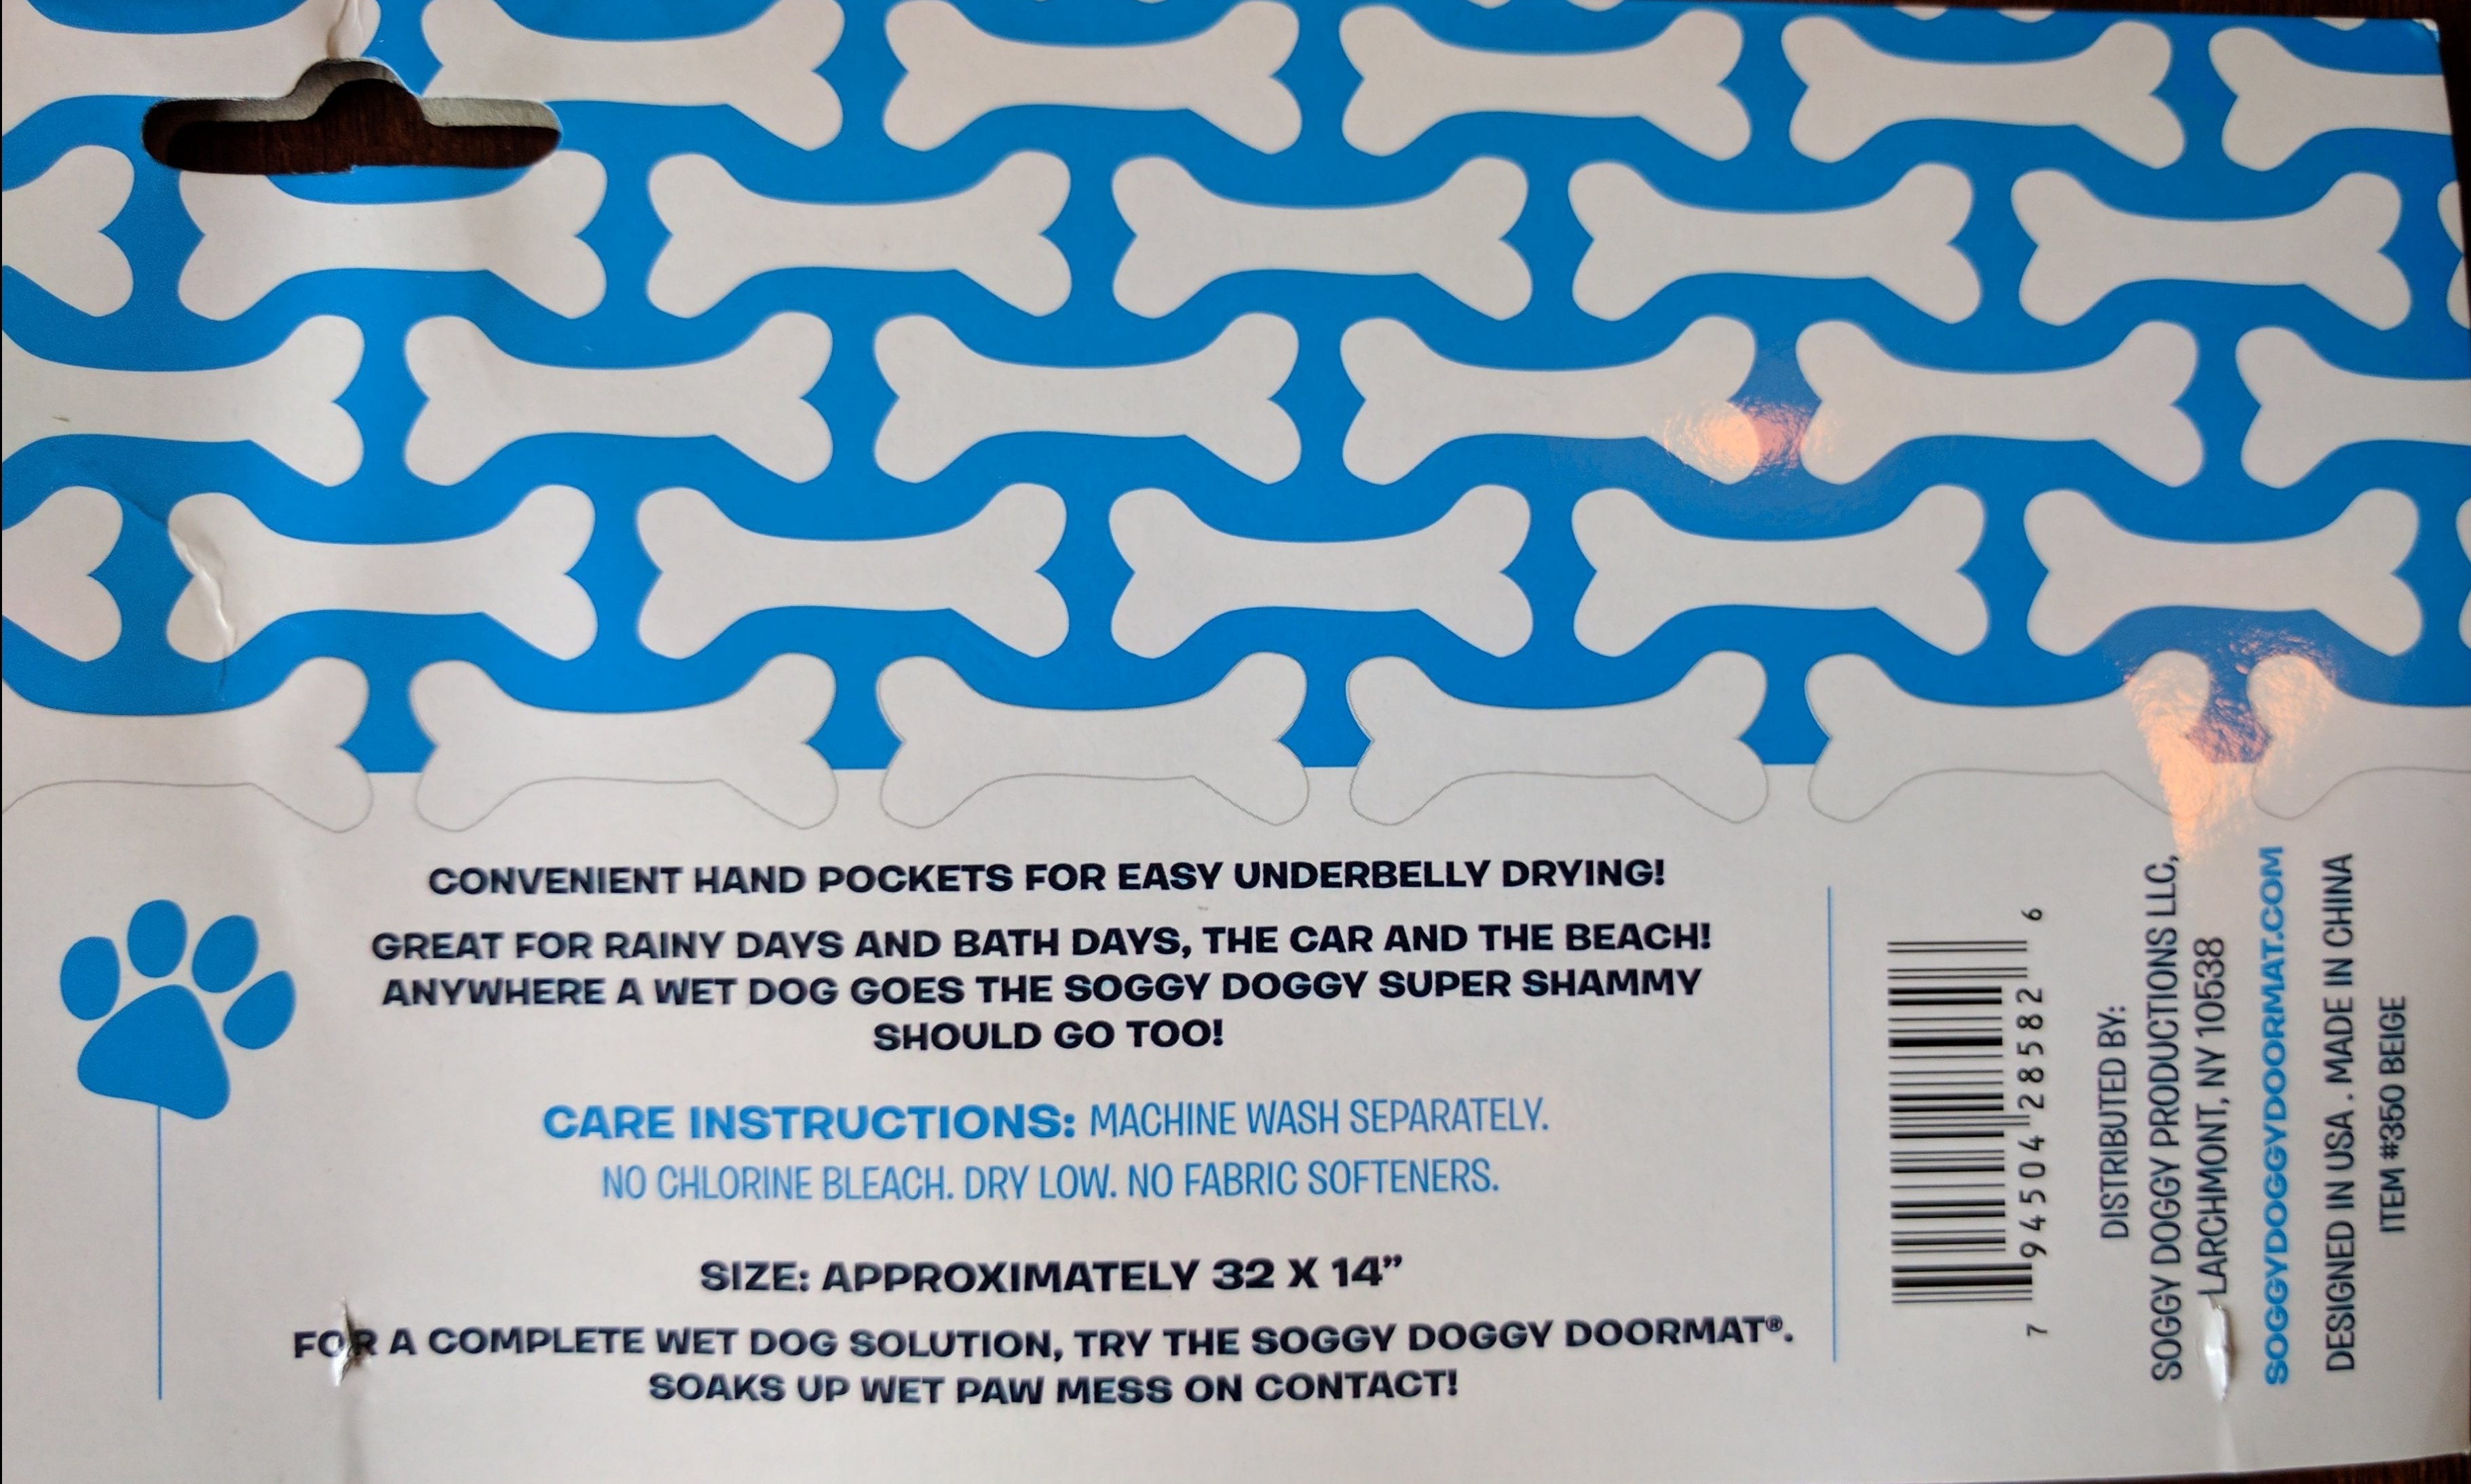 Soggy Doggy Information tag